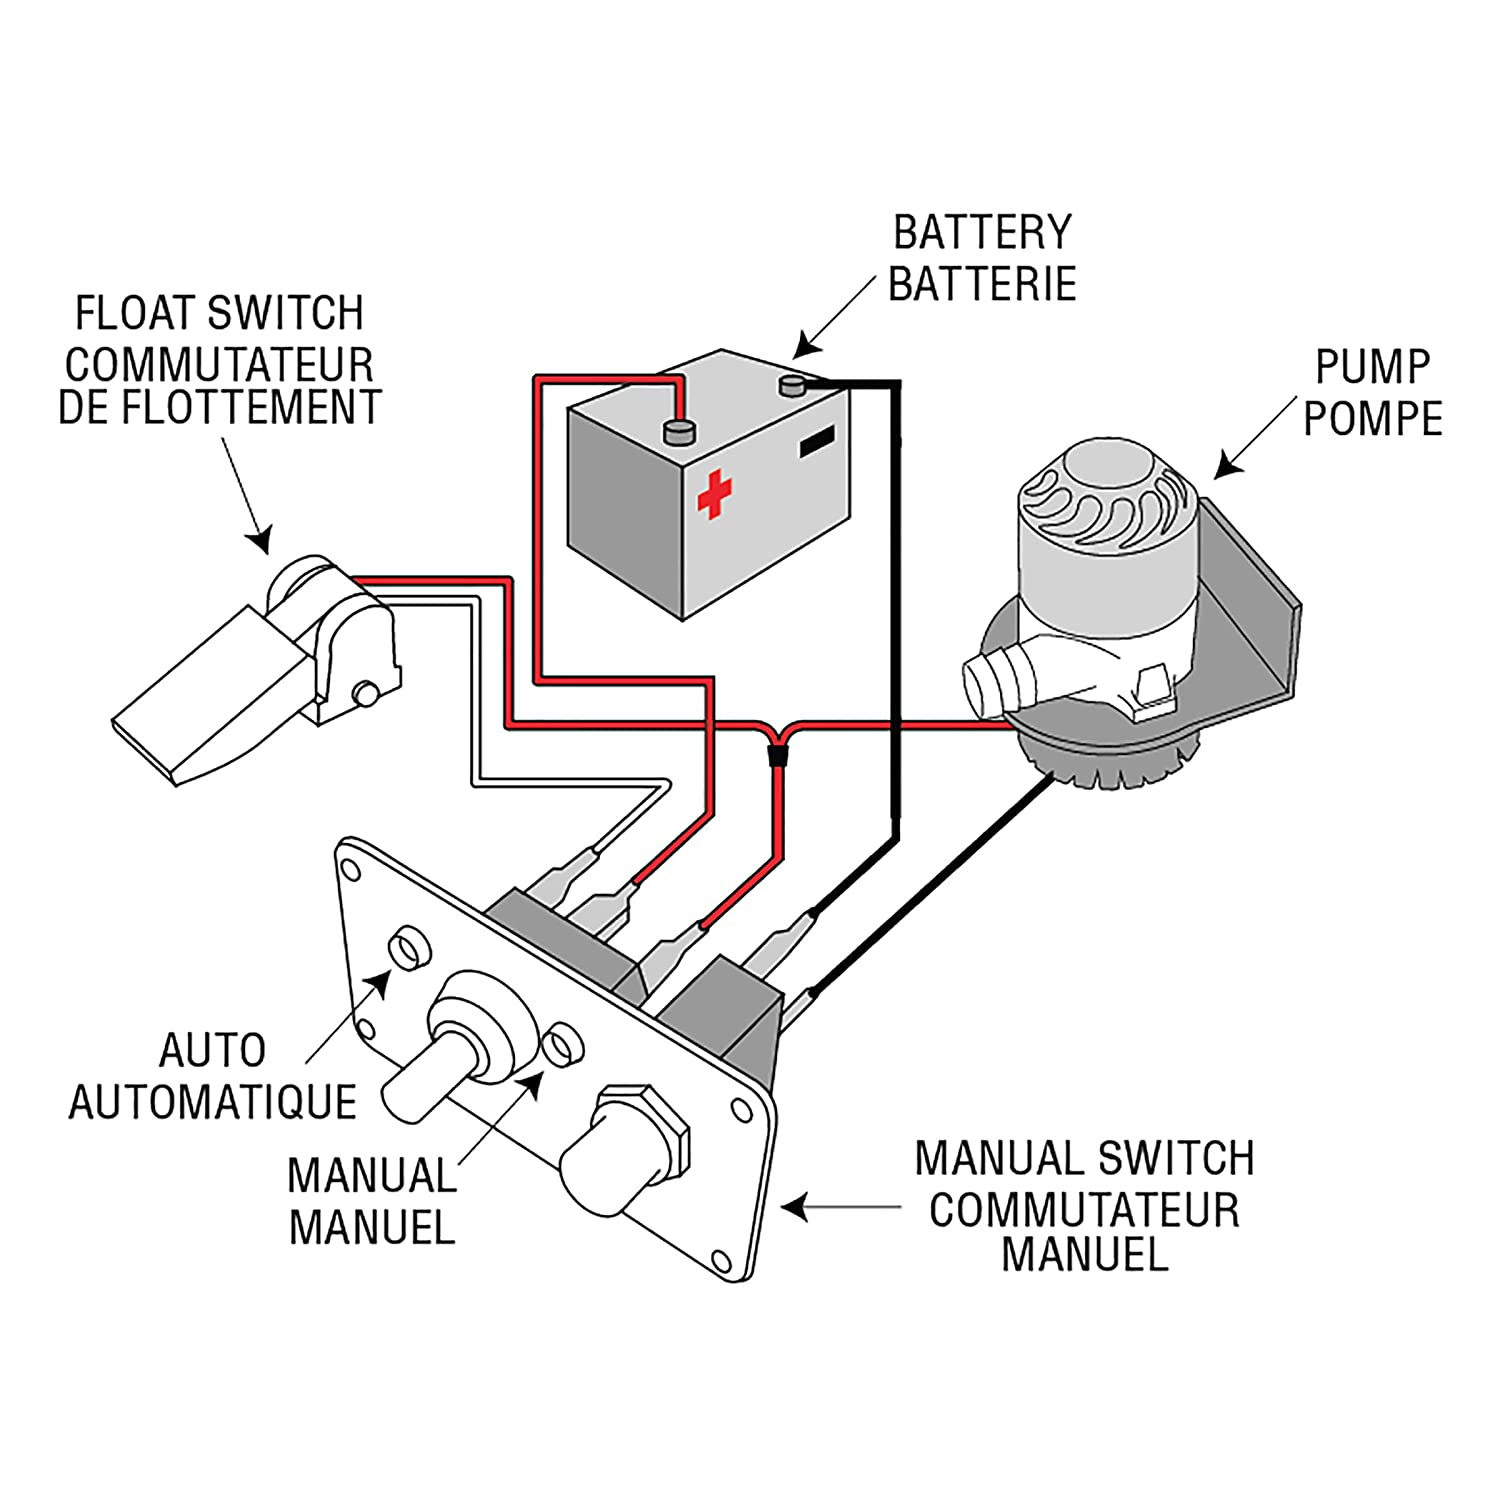 Bilge Pump Switch Wiring Diagram from images-na.ssl-images-amazon.com